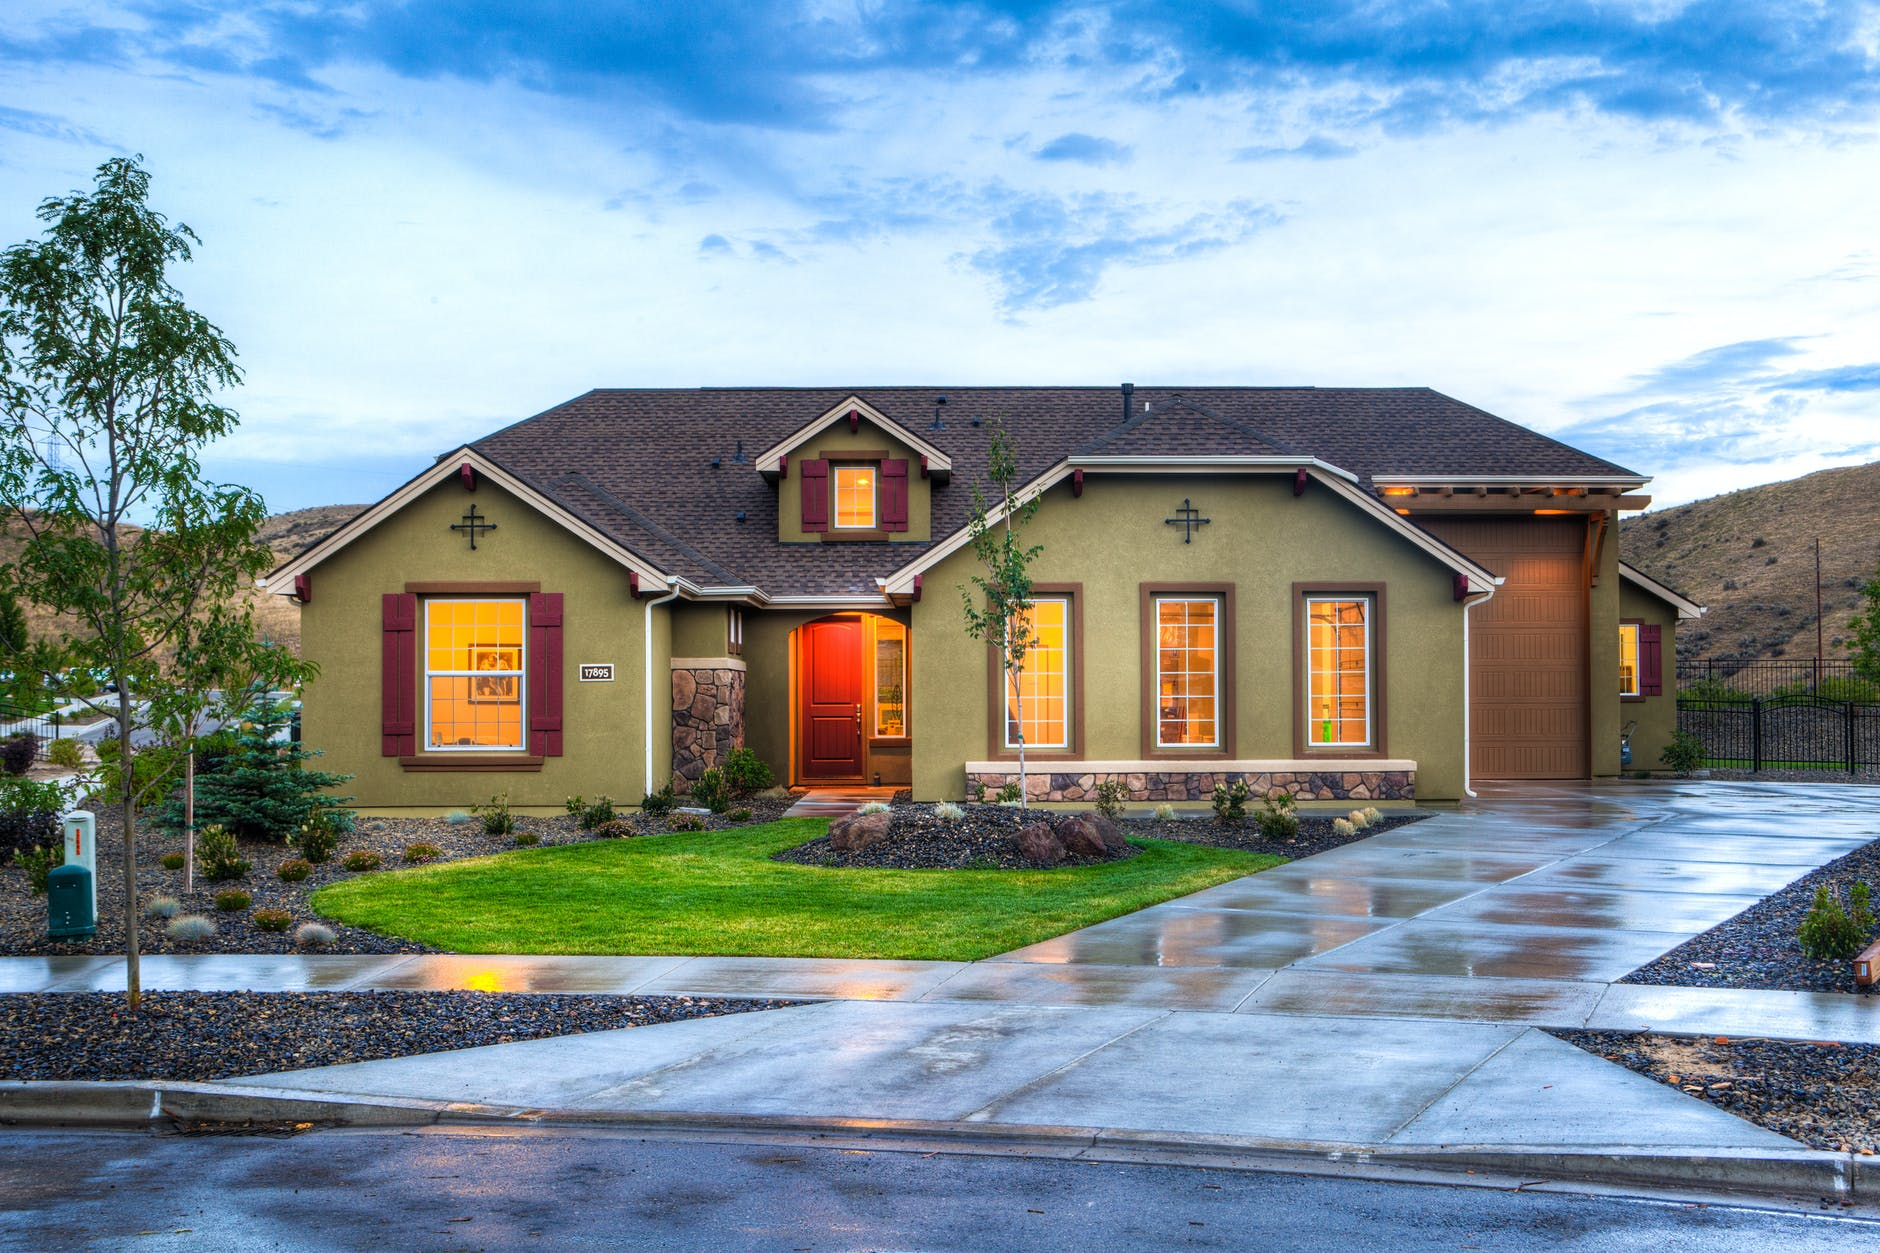 These 8 Tips Will Help Your Home Selling Process Go Smoothly